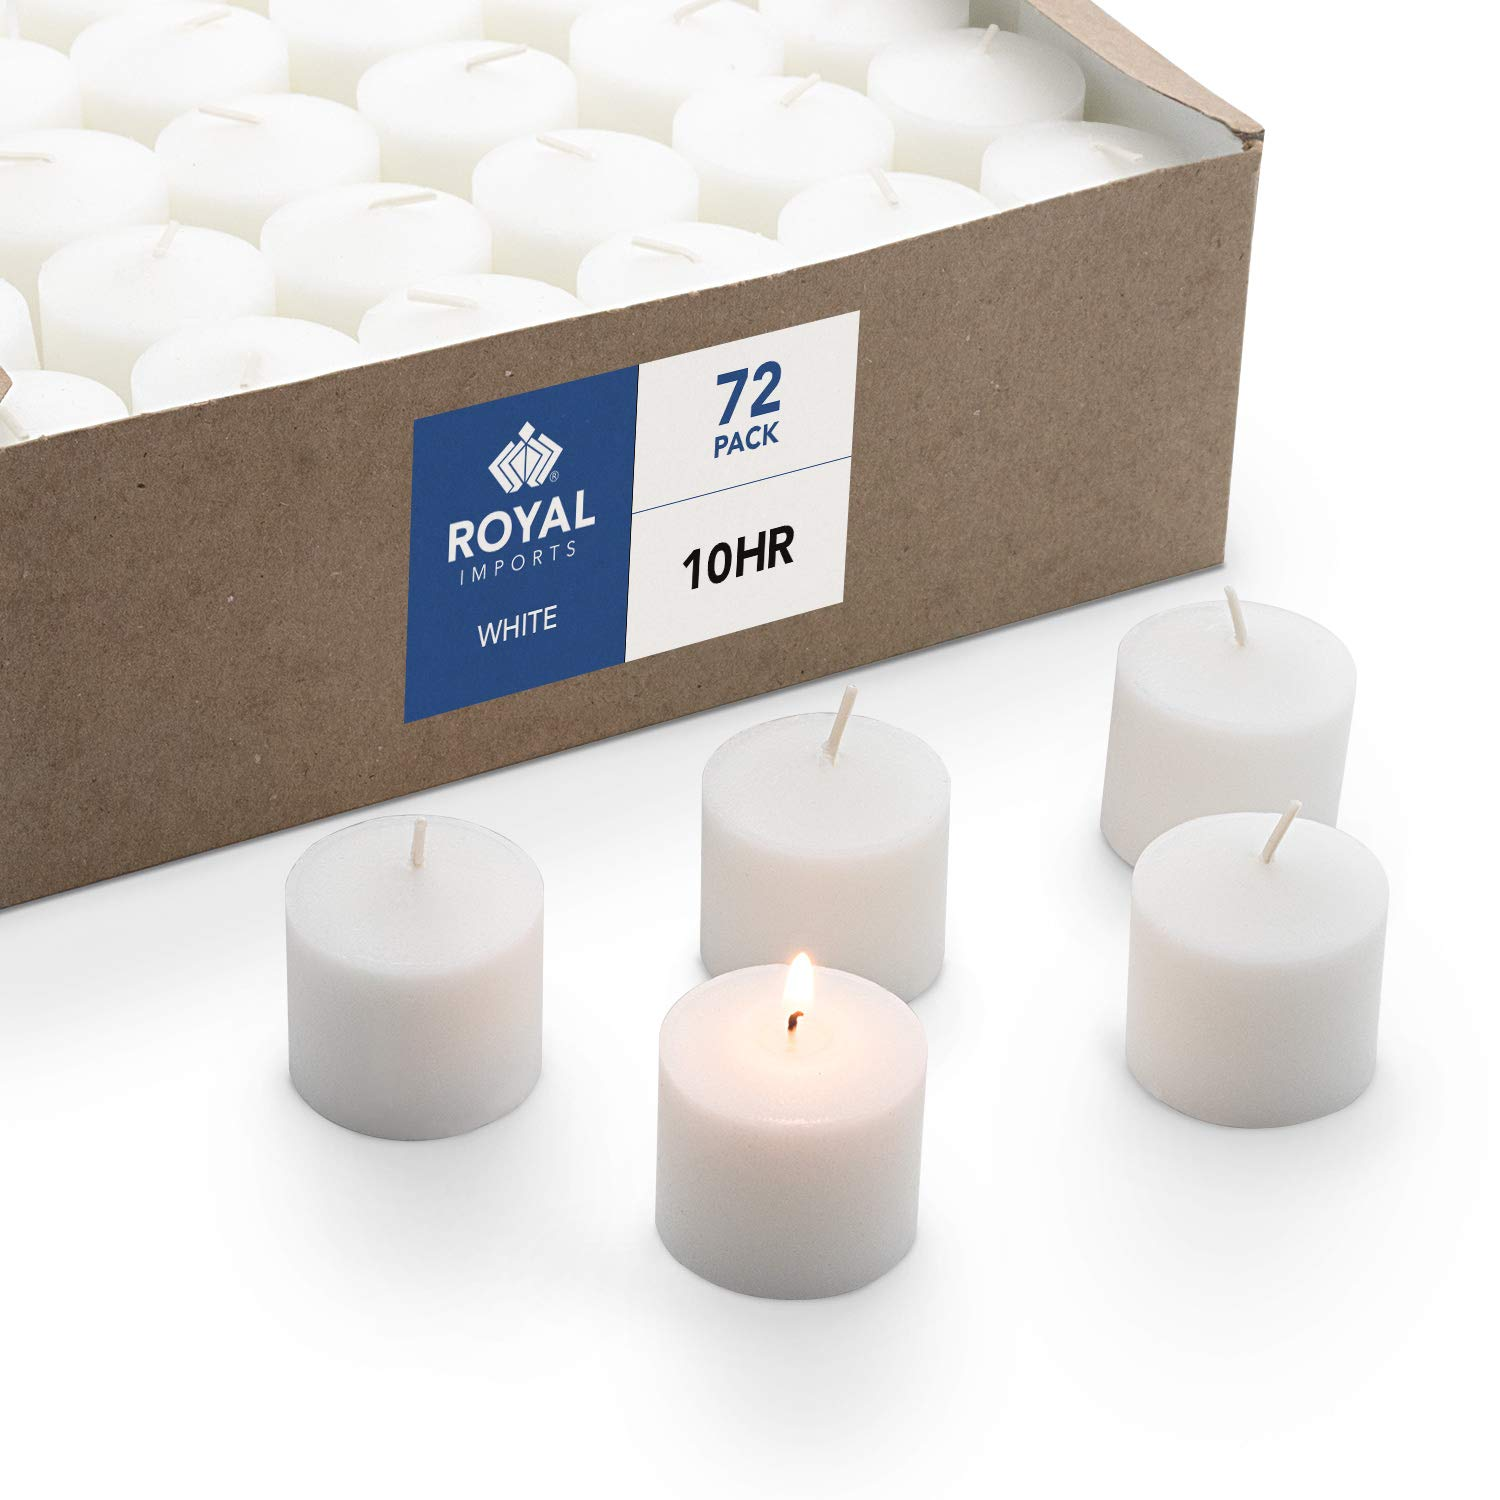 Royal Imports Votive Candle, Unscented White Wax, Box of 72, for Wedding, Birthday, Holiday & Home Decoration (10 Hour) by Royal Imports